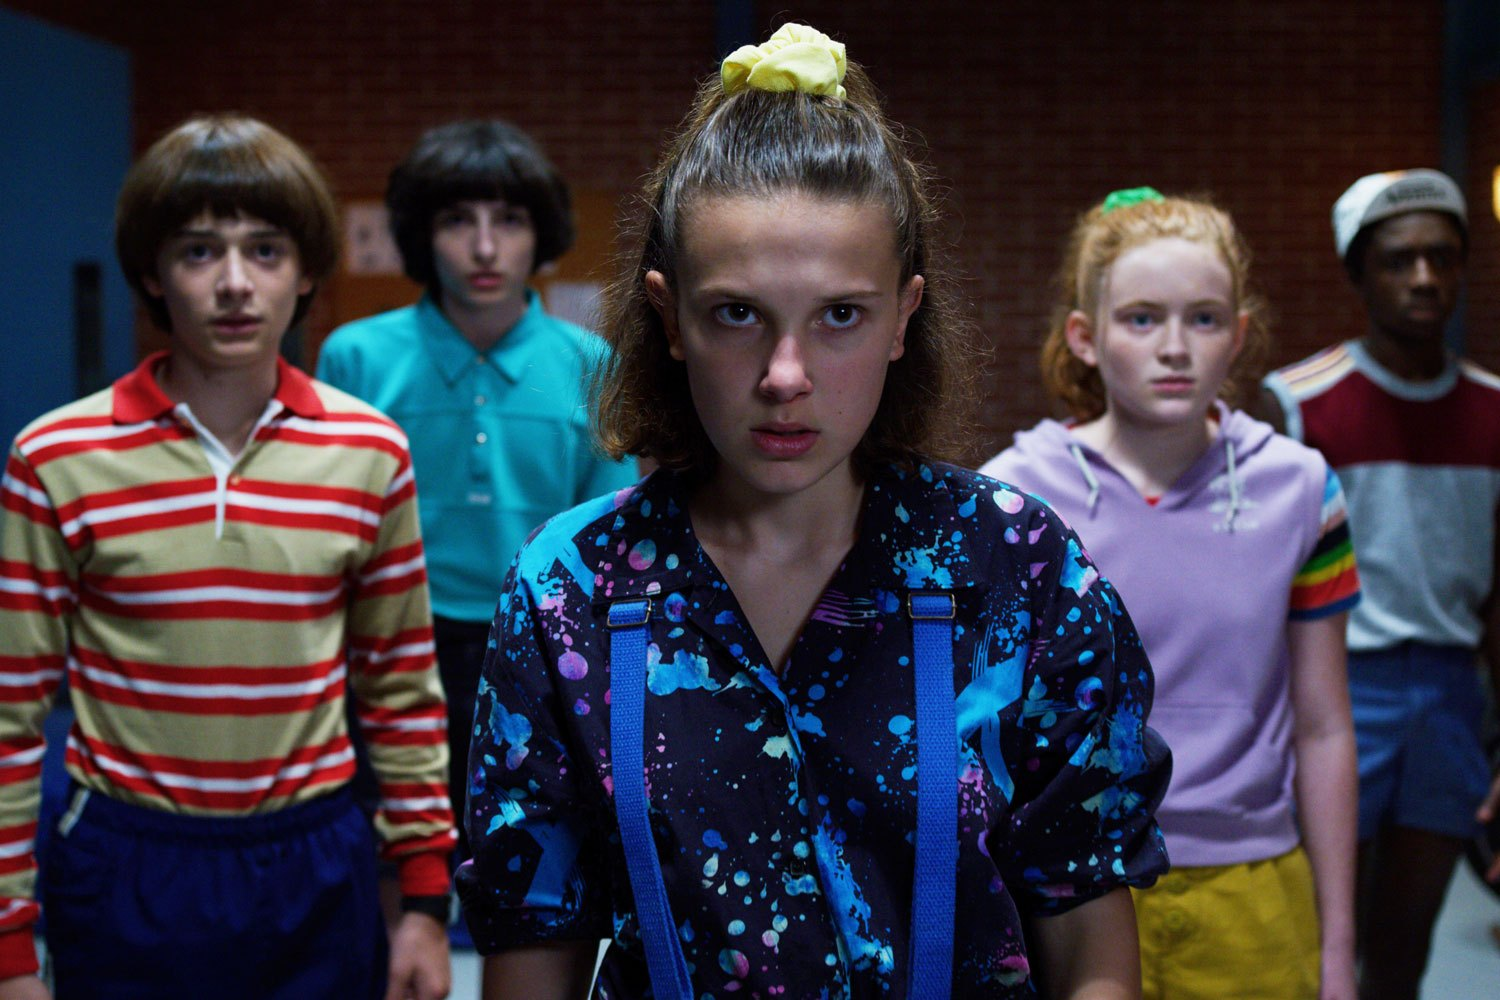 Stranger Things, via Netflix